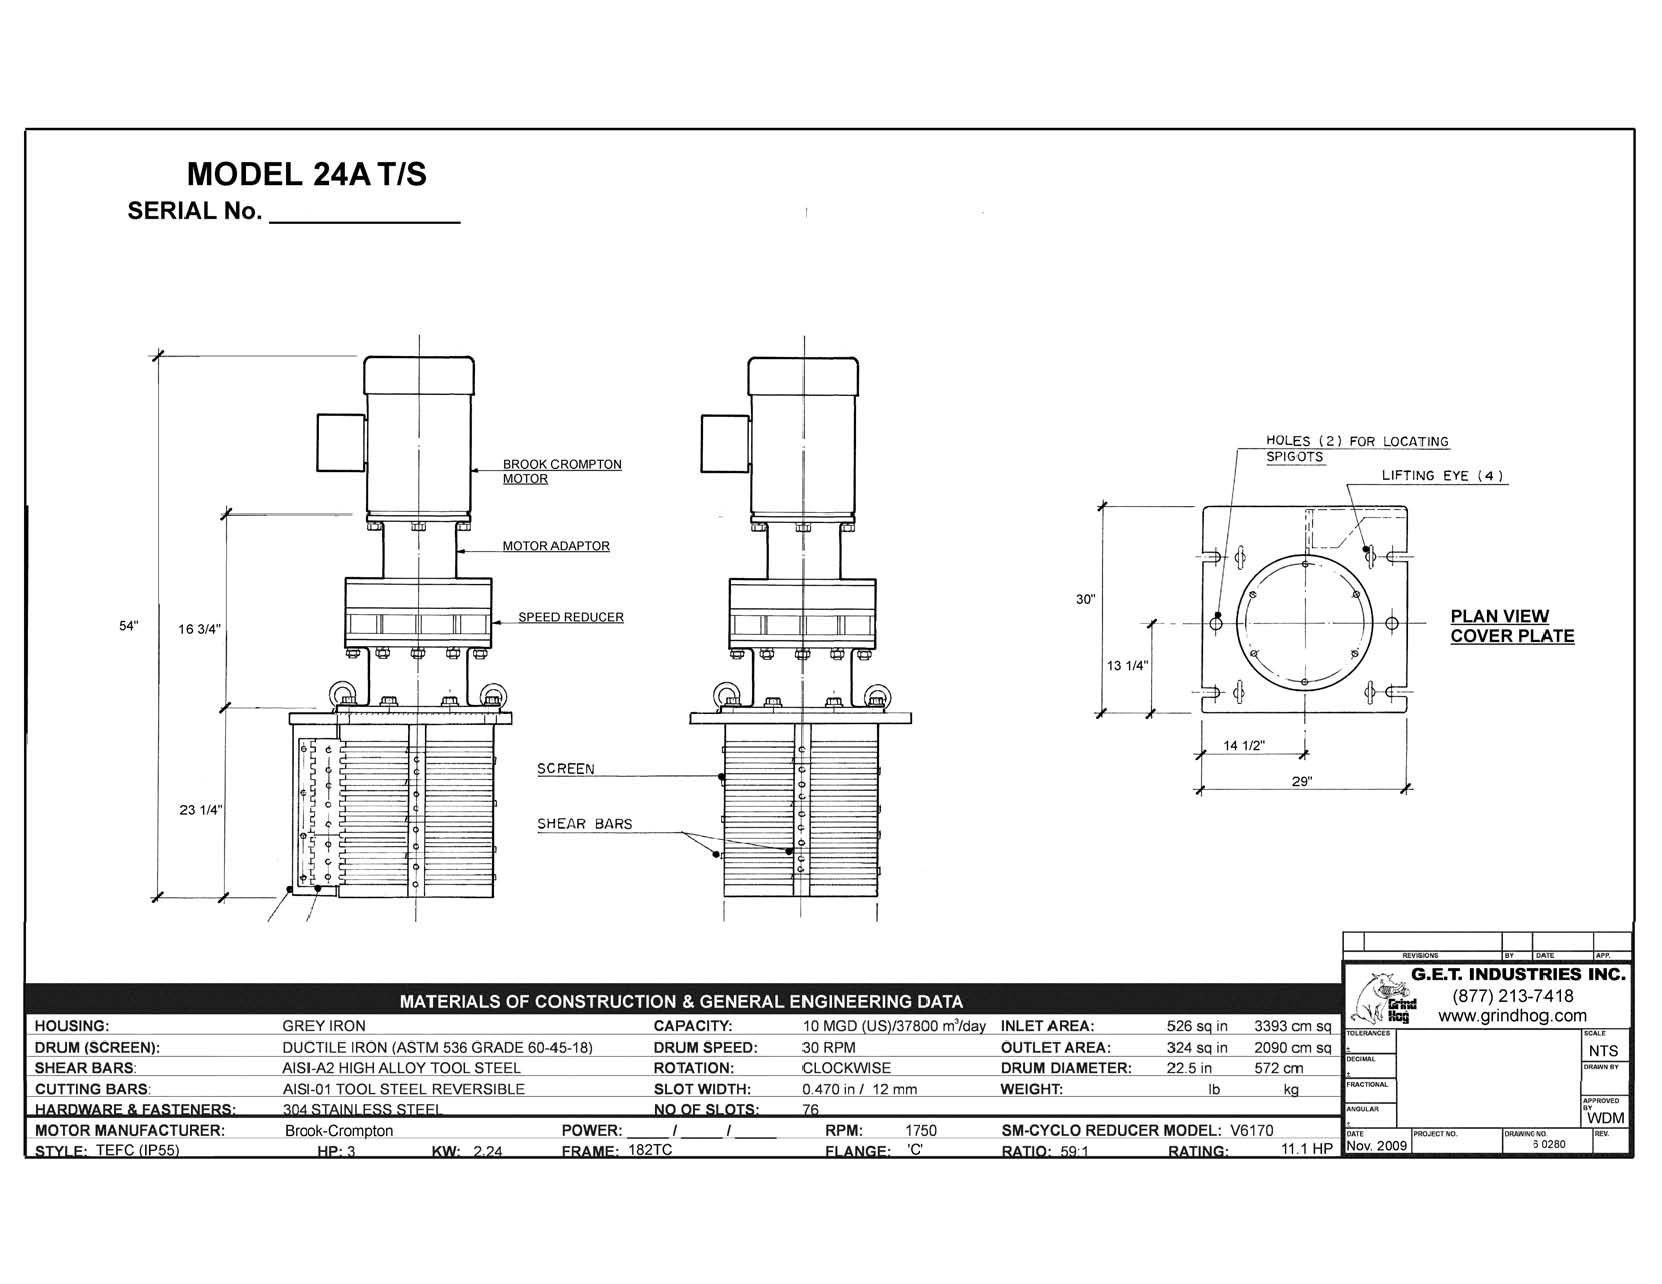 data drawing for Model 24A T/S